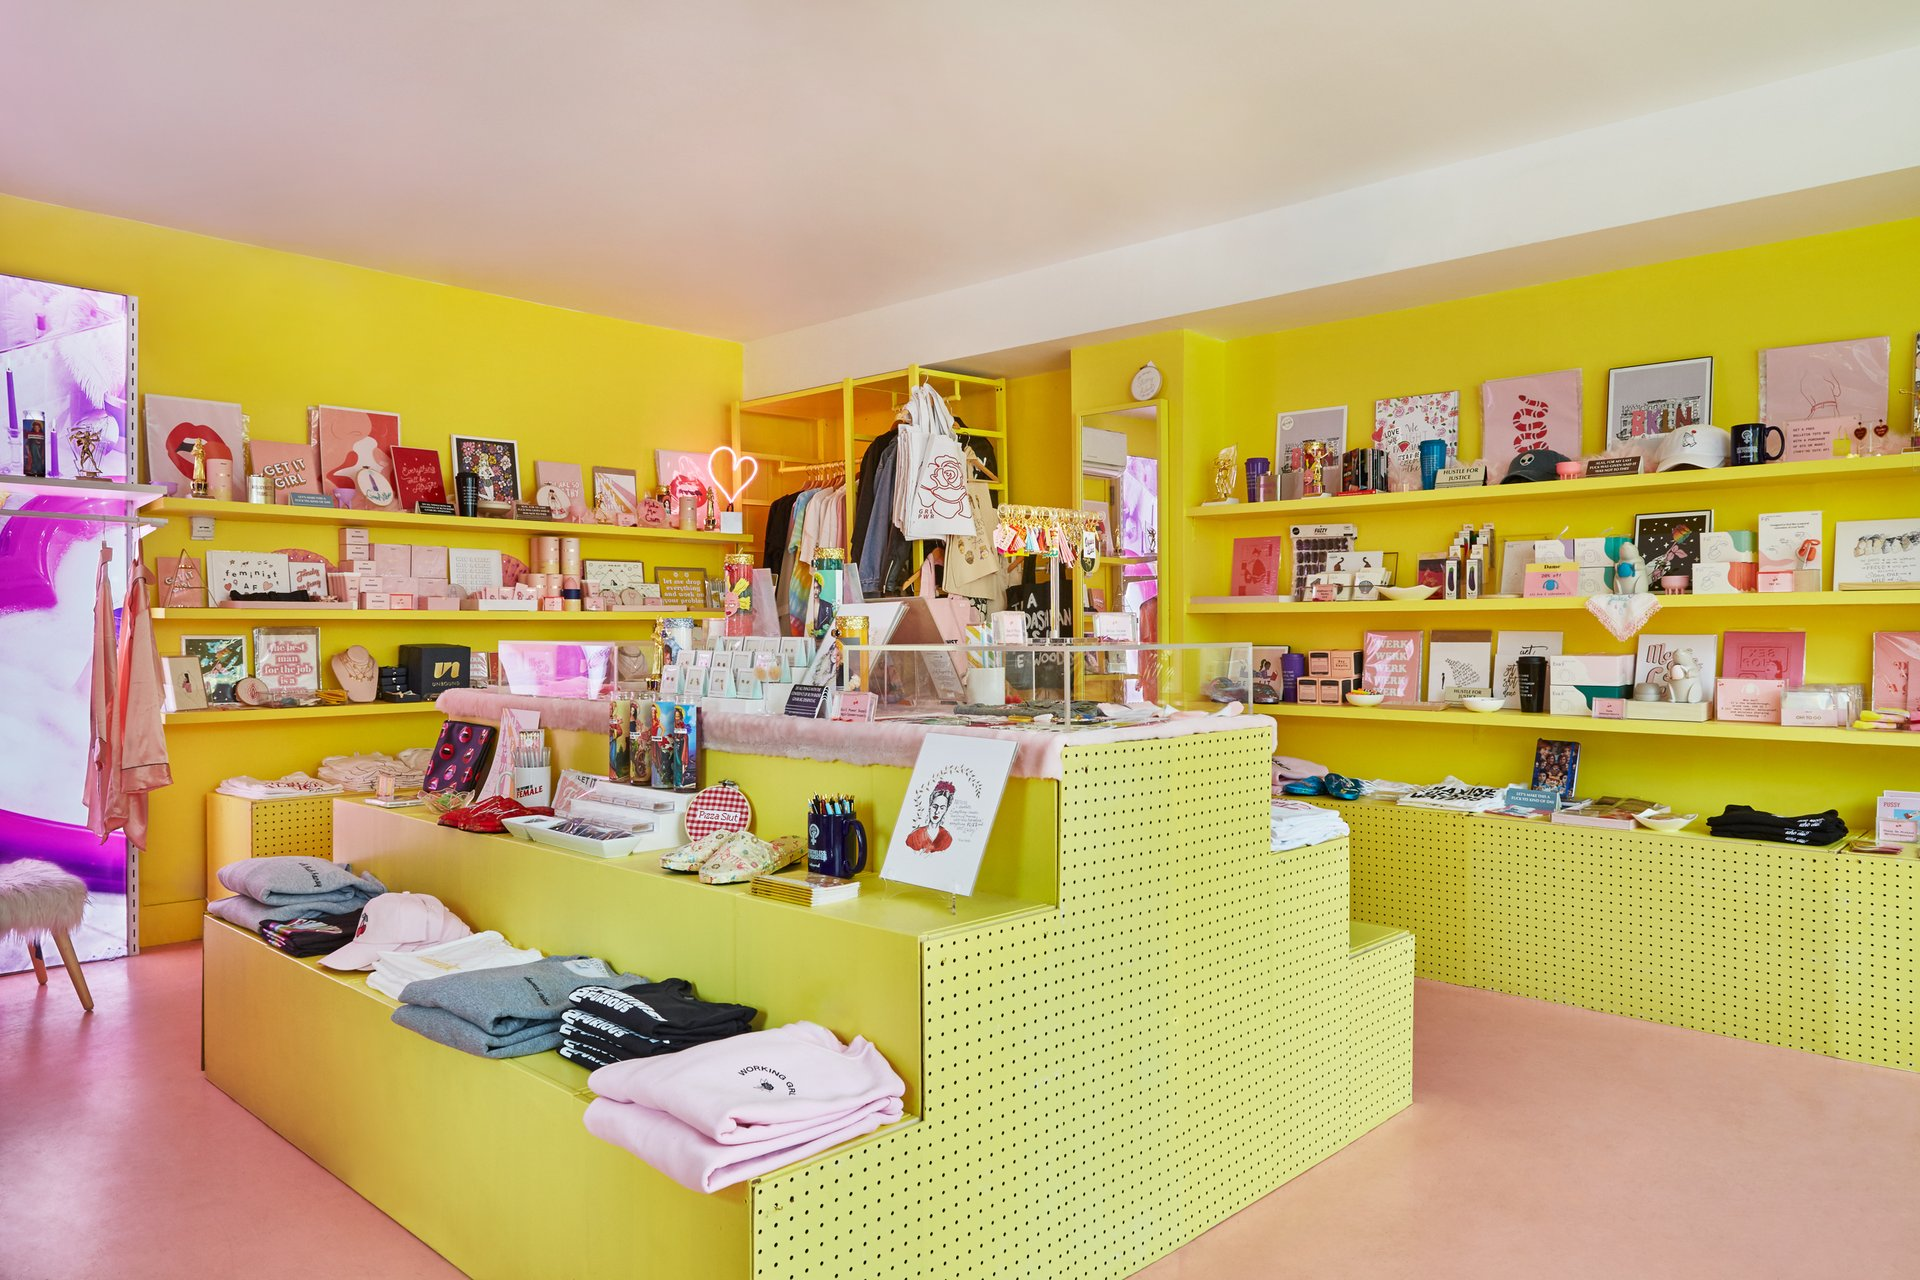 The Bulletin store in Brooklyn, New York. Image courtesy of Bulletin.